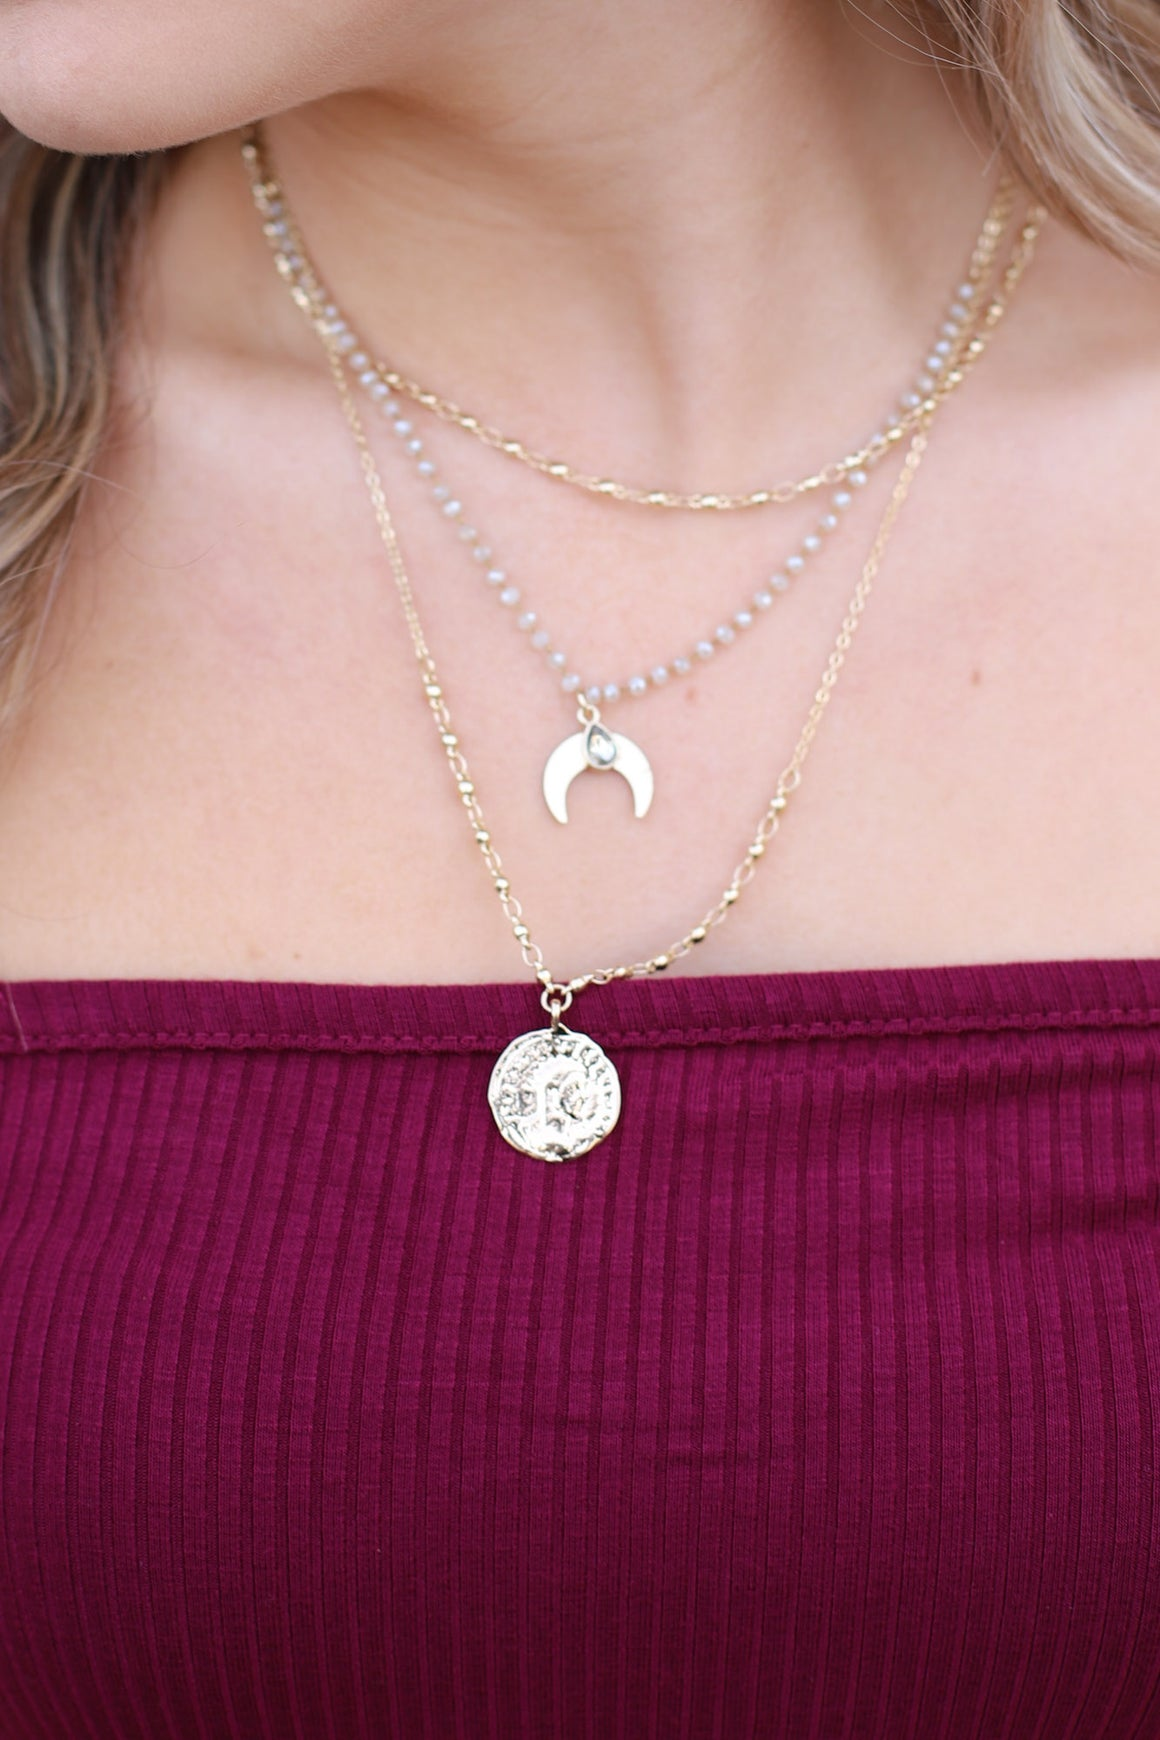 Put A Spell On You Necklace: Gold - ShopSpoiled